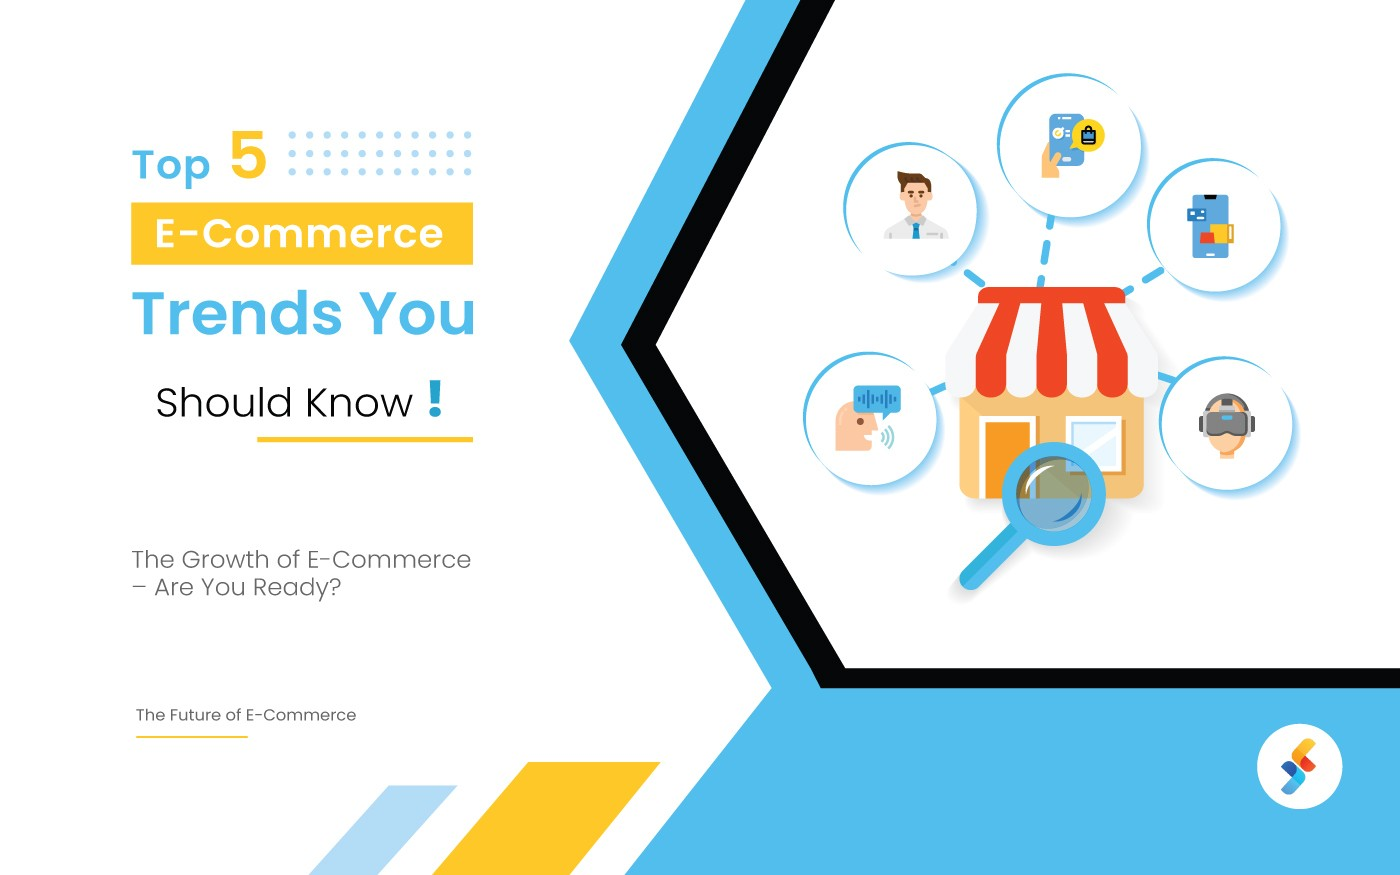 Top-5-E-Commerce-Trends-You-Should-Know